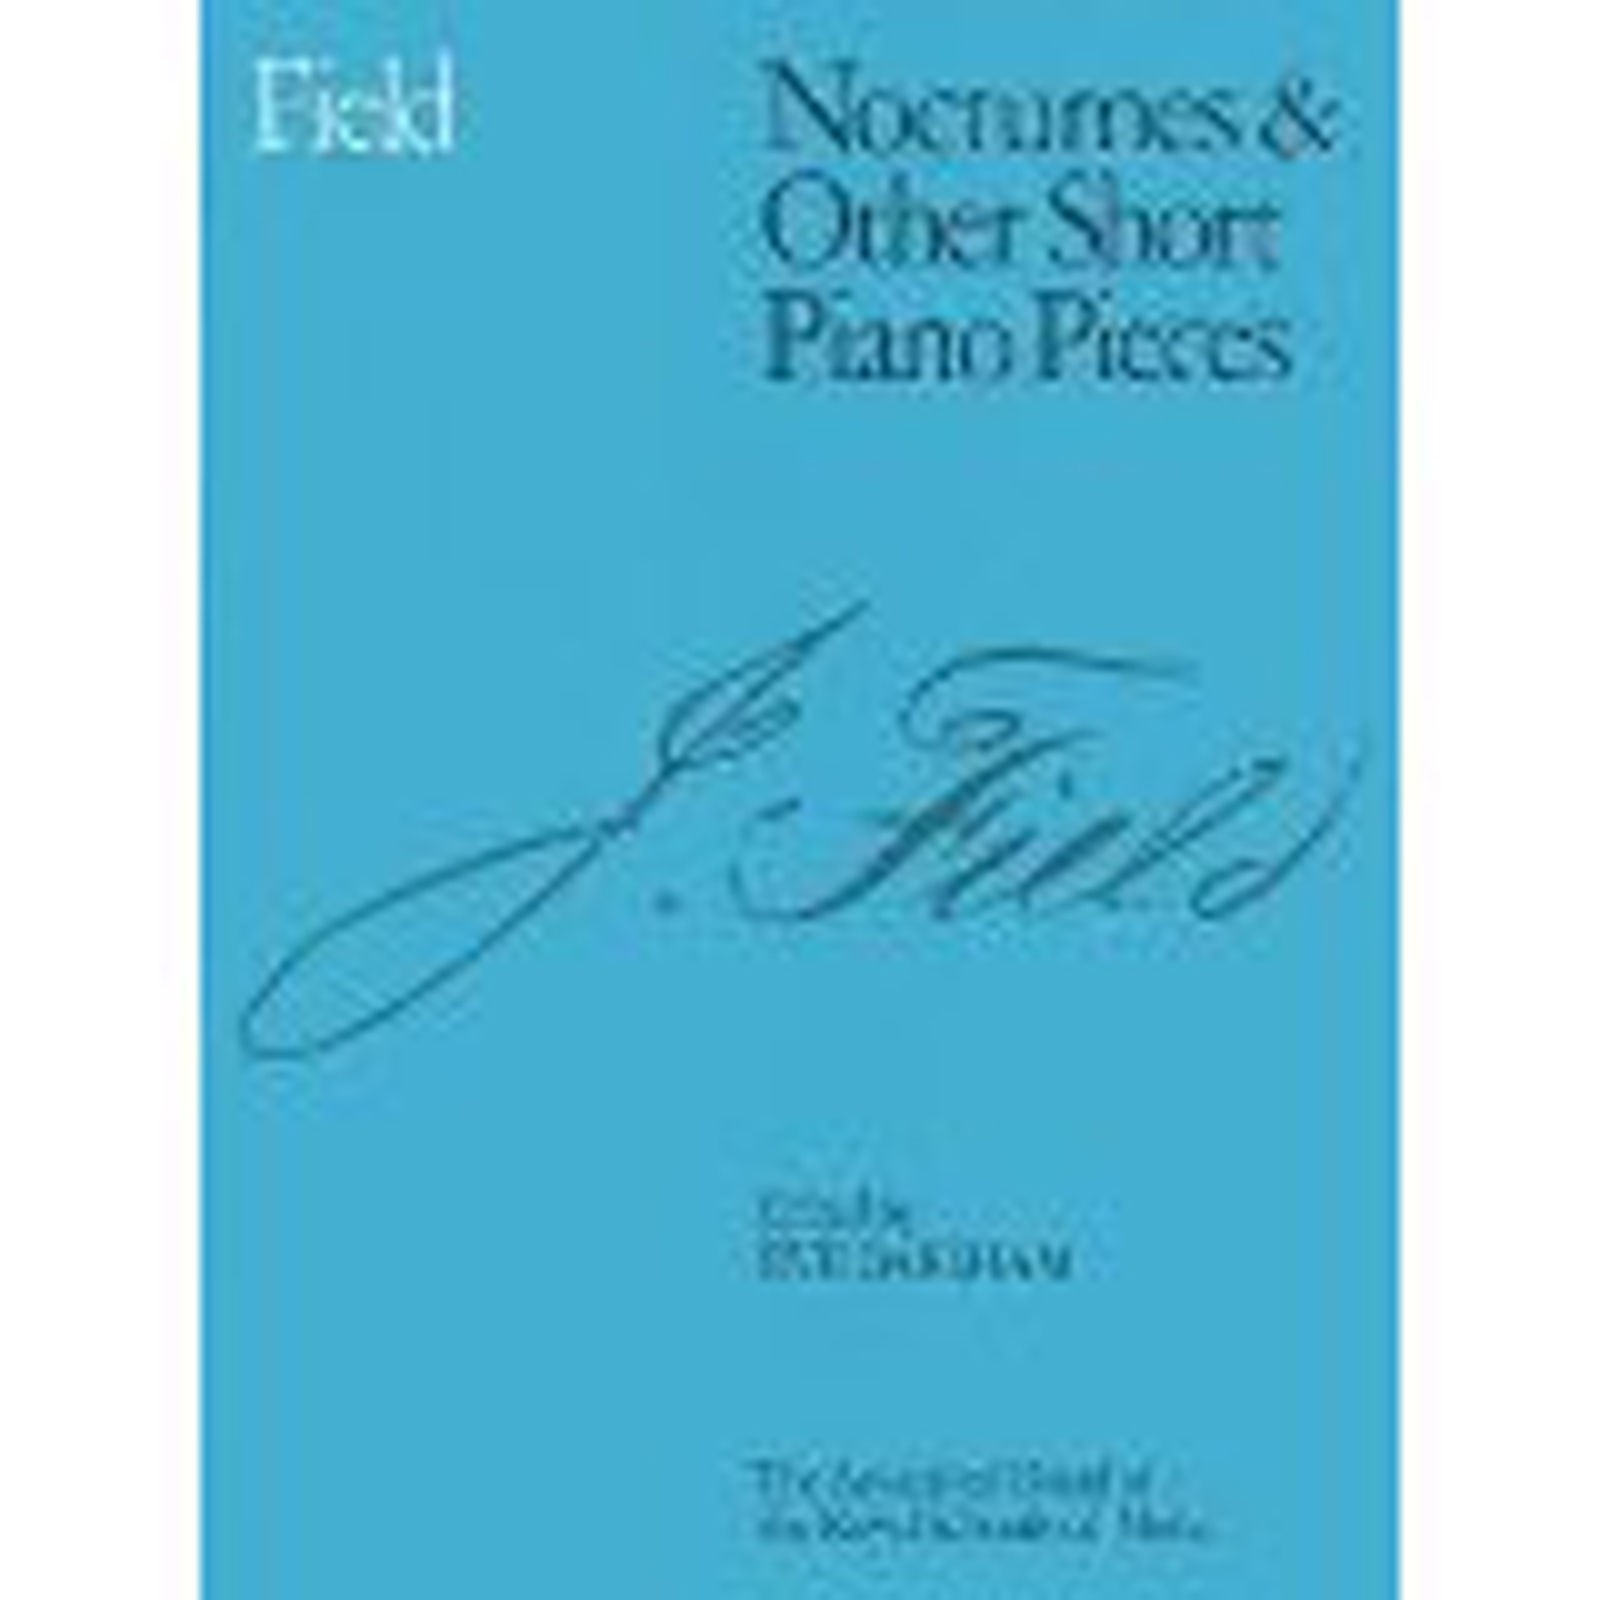 Field Nocturnes & Other Short Piano Pieces Sheet Music Book ABRSM B83